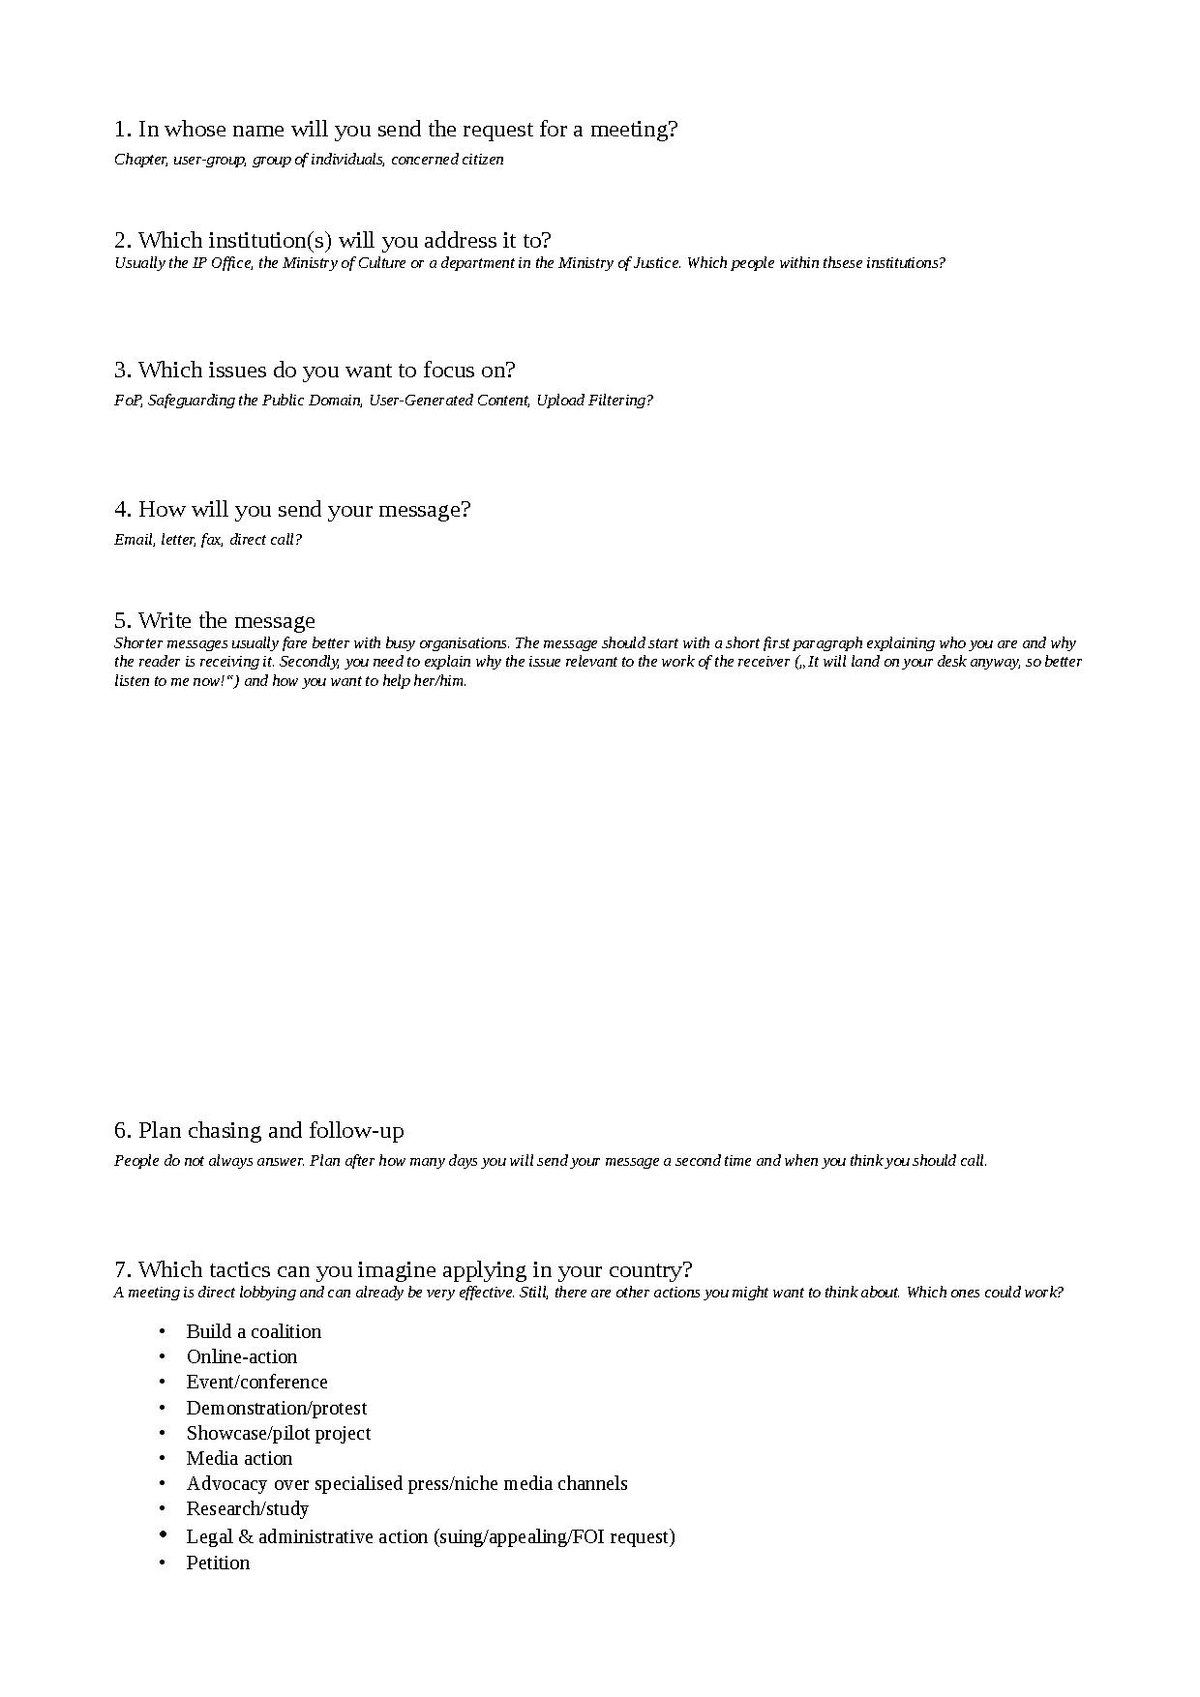 File National Action Plans Worksheet